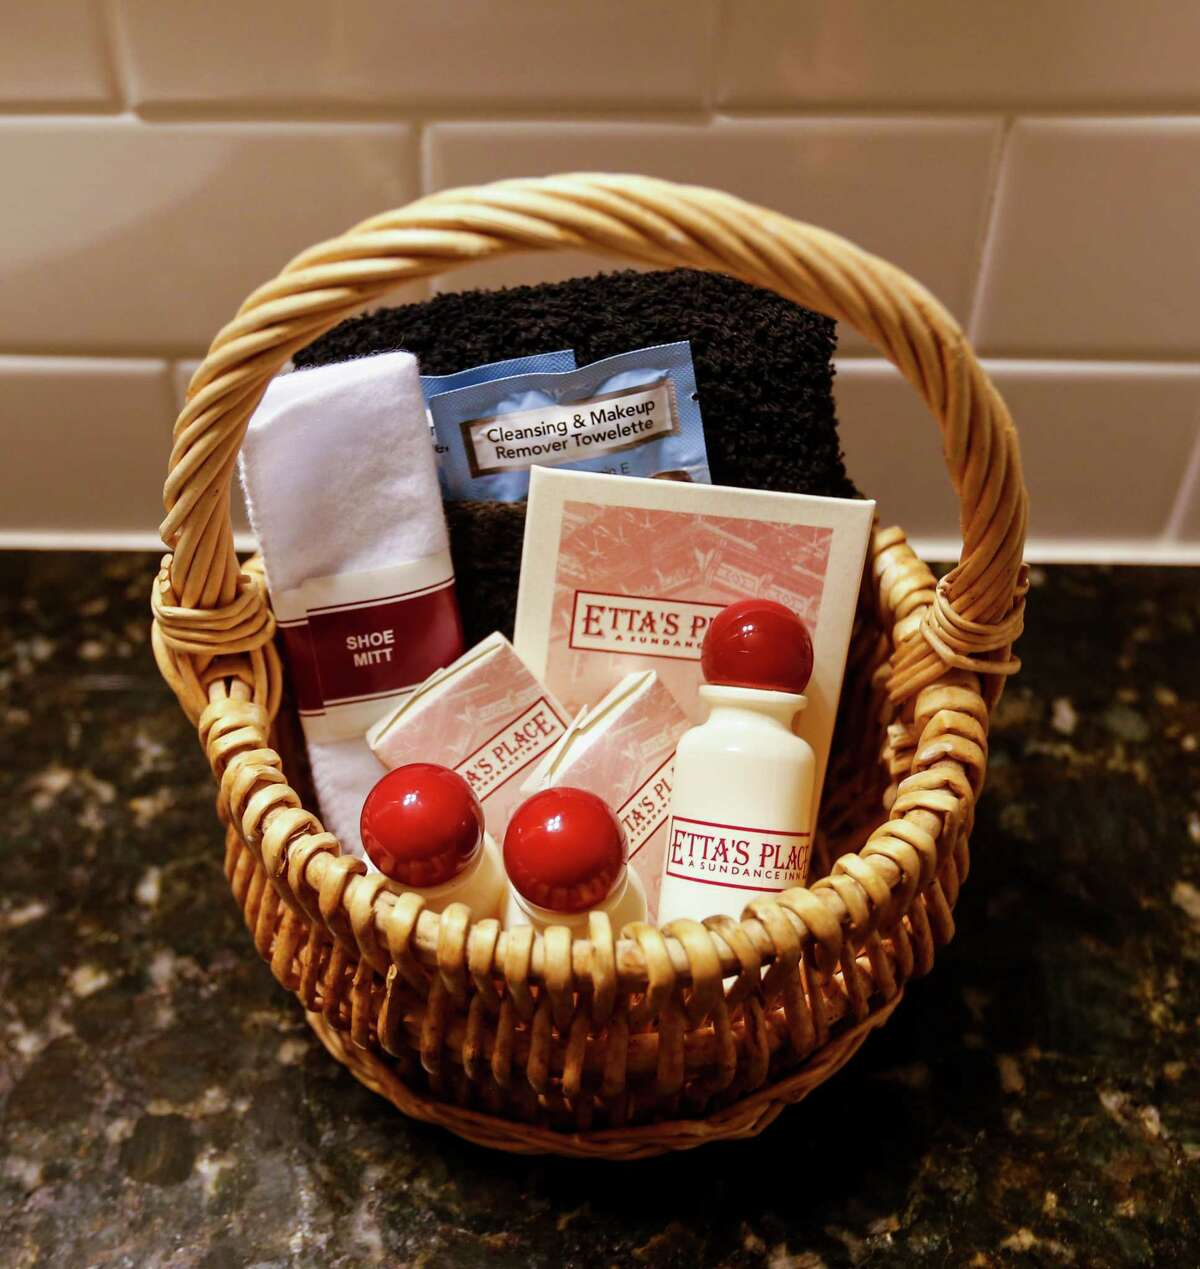 Forget your shampoo? That's no problem if you're staying at Etta's Place, a Sundance Inn in Fort Worth.